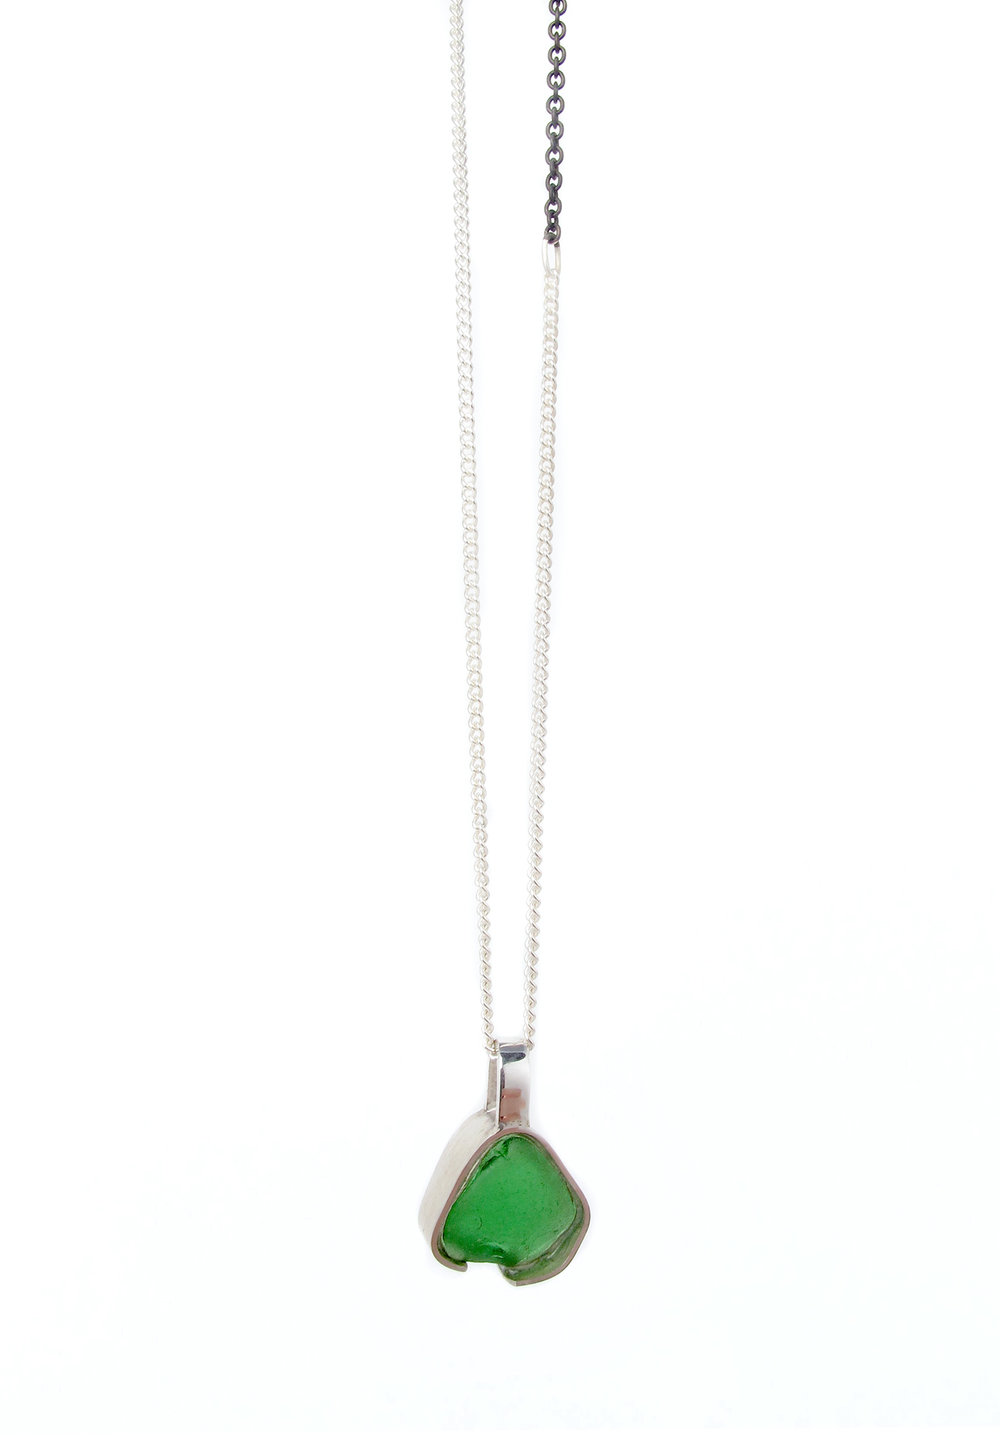 green beach glass necklace 1.jpg